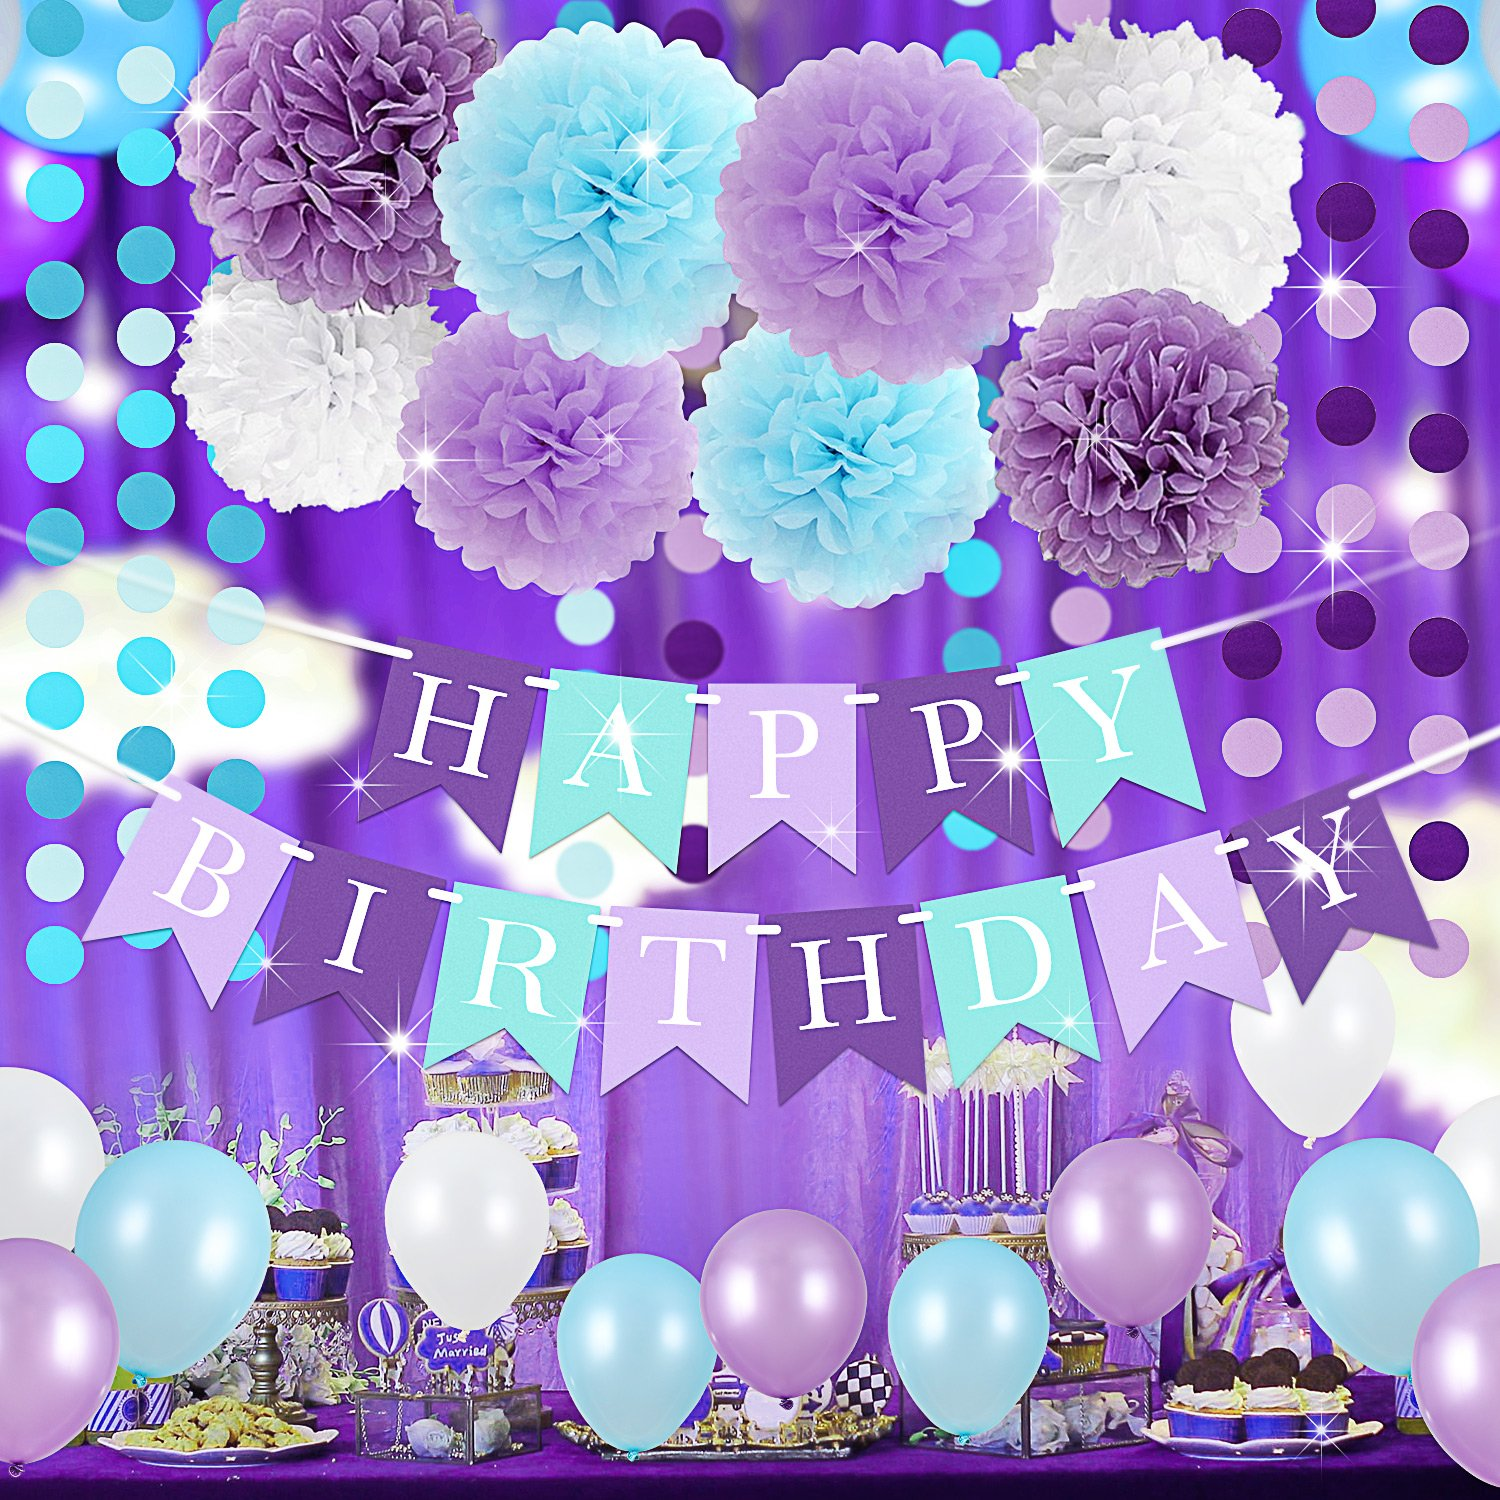 Mermaid Birthday Party Supplies Under The Sea Party Supplies Purple Blue White Mermaid Birthday Banner Pom Poms Balloons Baby Shower Purple Mermaid Party Decorations Bridal Shower Decor